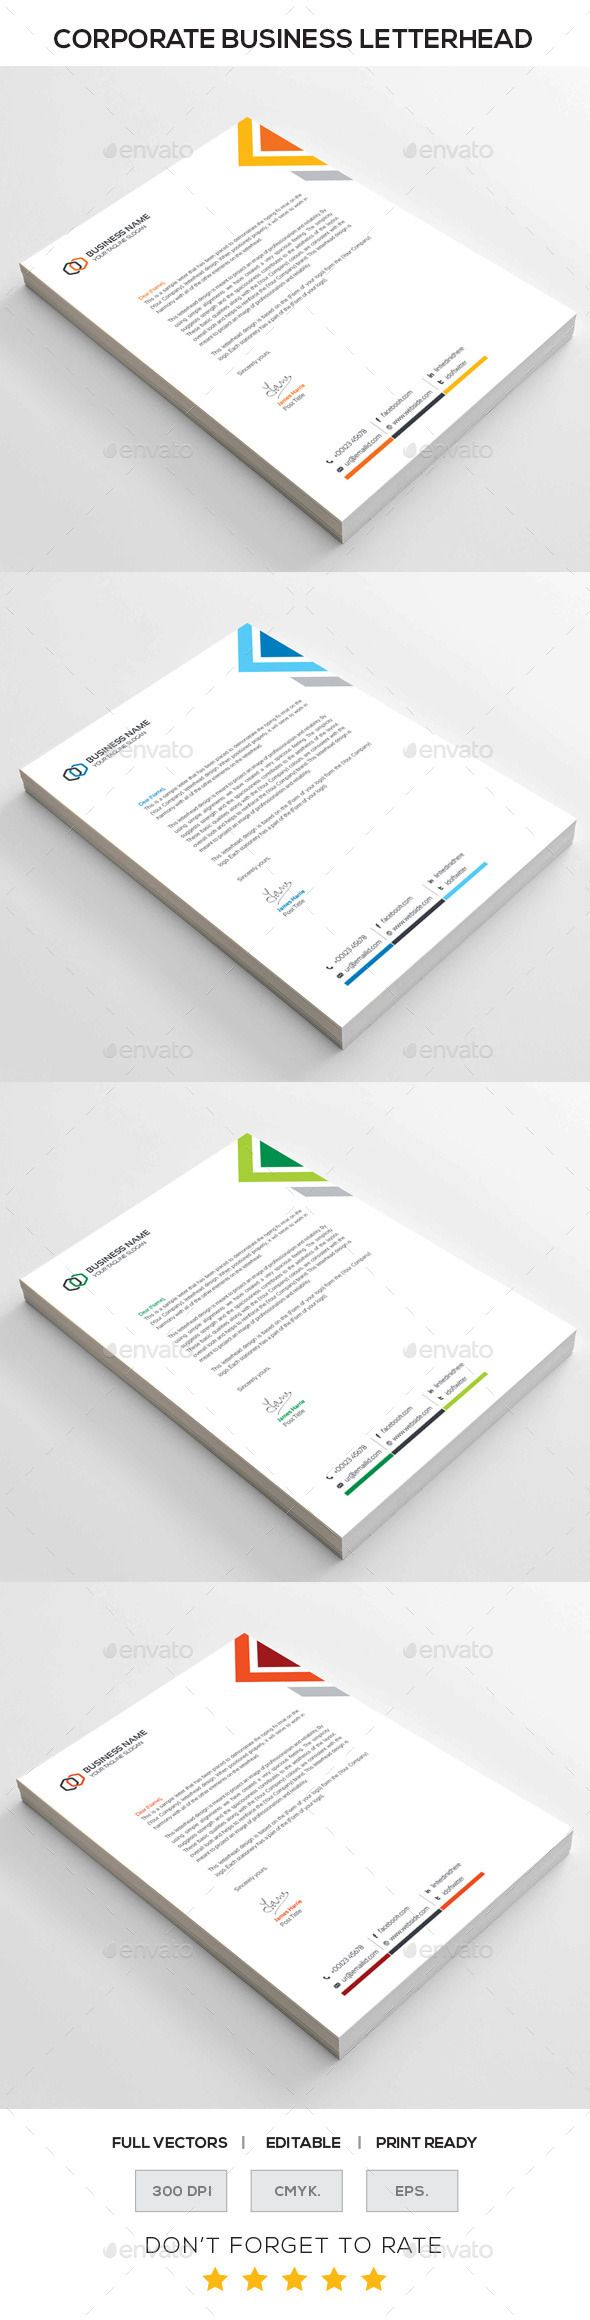 16 best letter heads images on pinterest business cards corporate corporate letterhead spiritdancerdesigns Choice Image